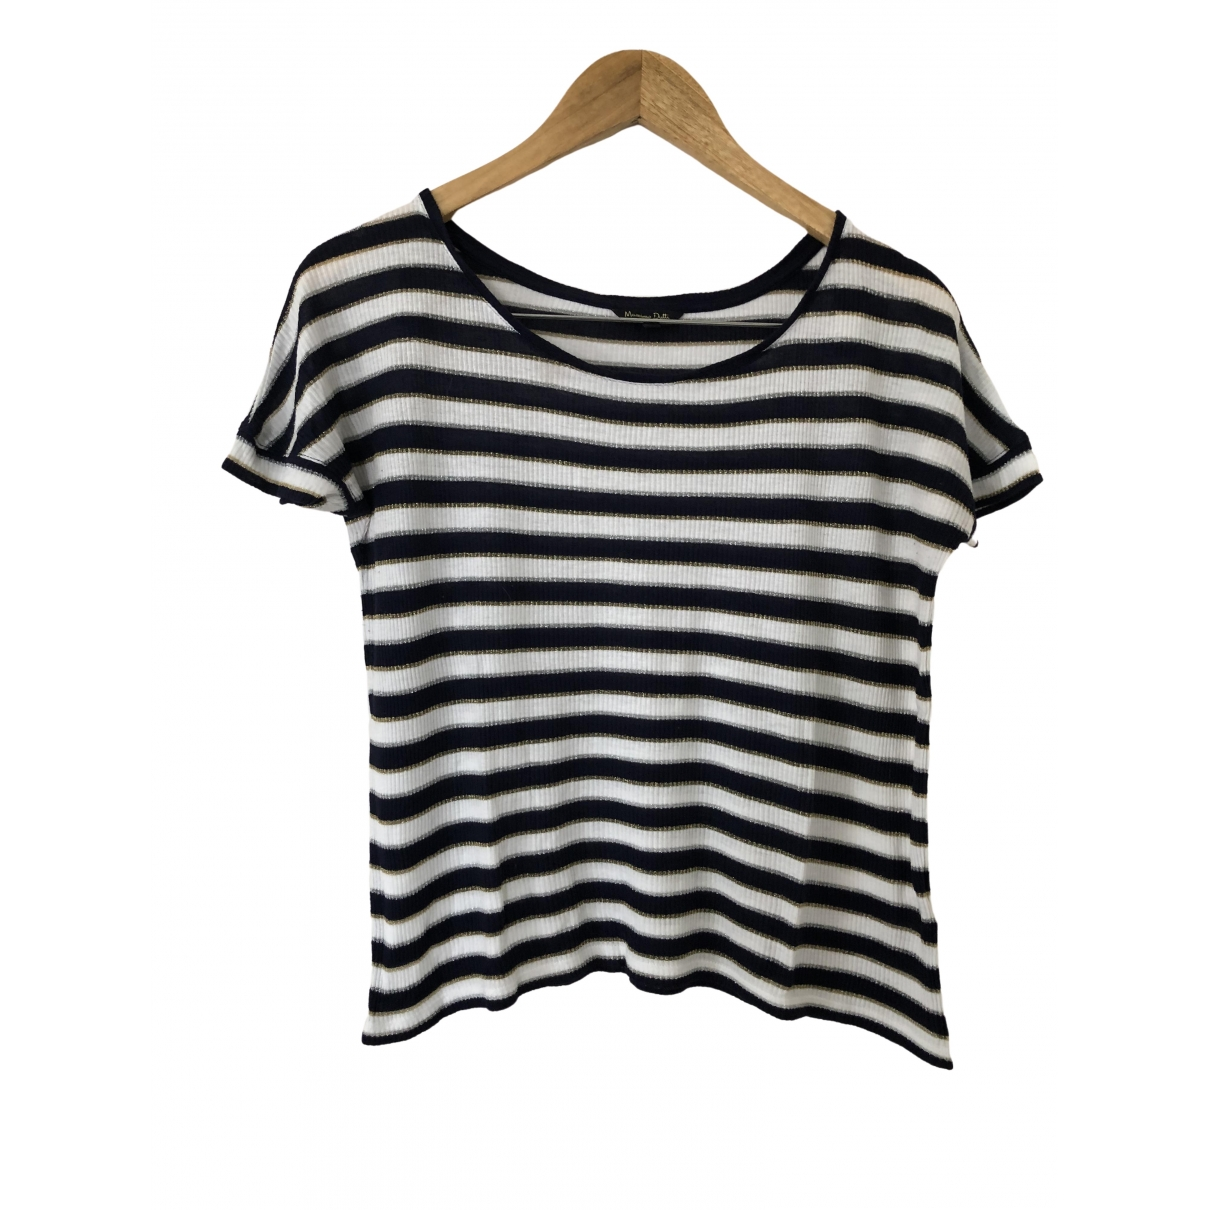 Massimo Dutti \N Cotton  top for Women S International